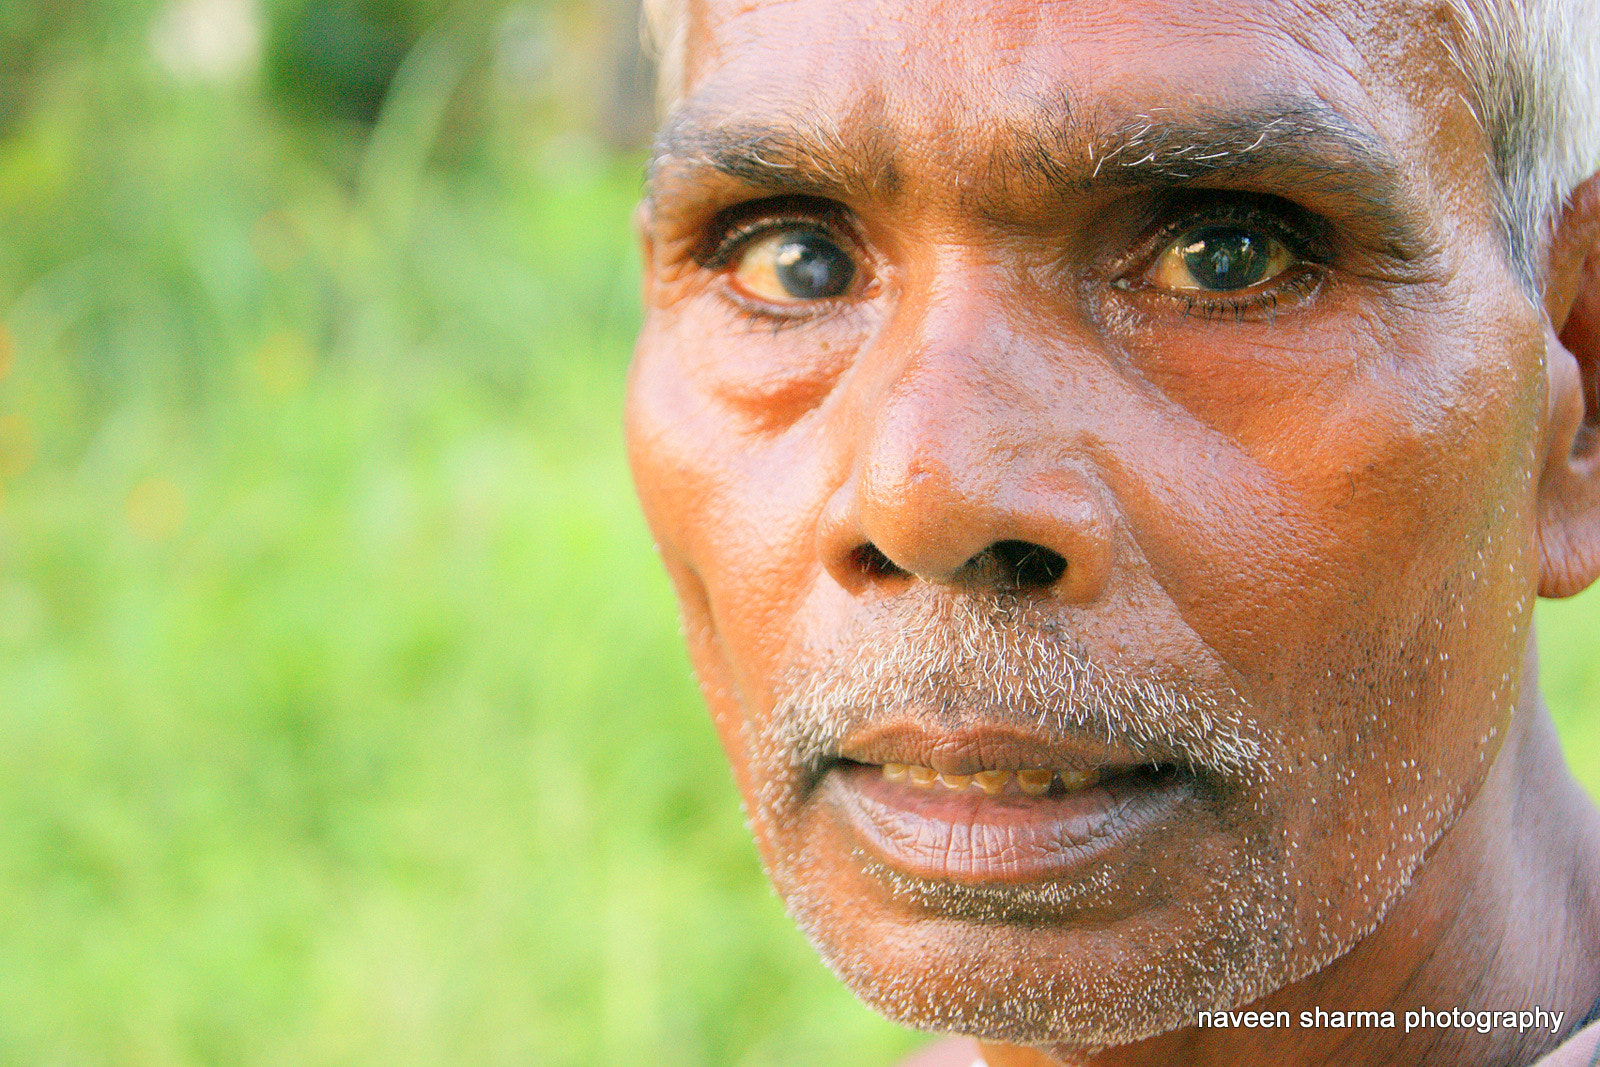 Photograph Aged man having cataract in left eye by naveen sharma on 500px